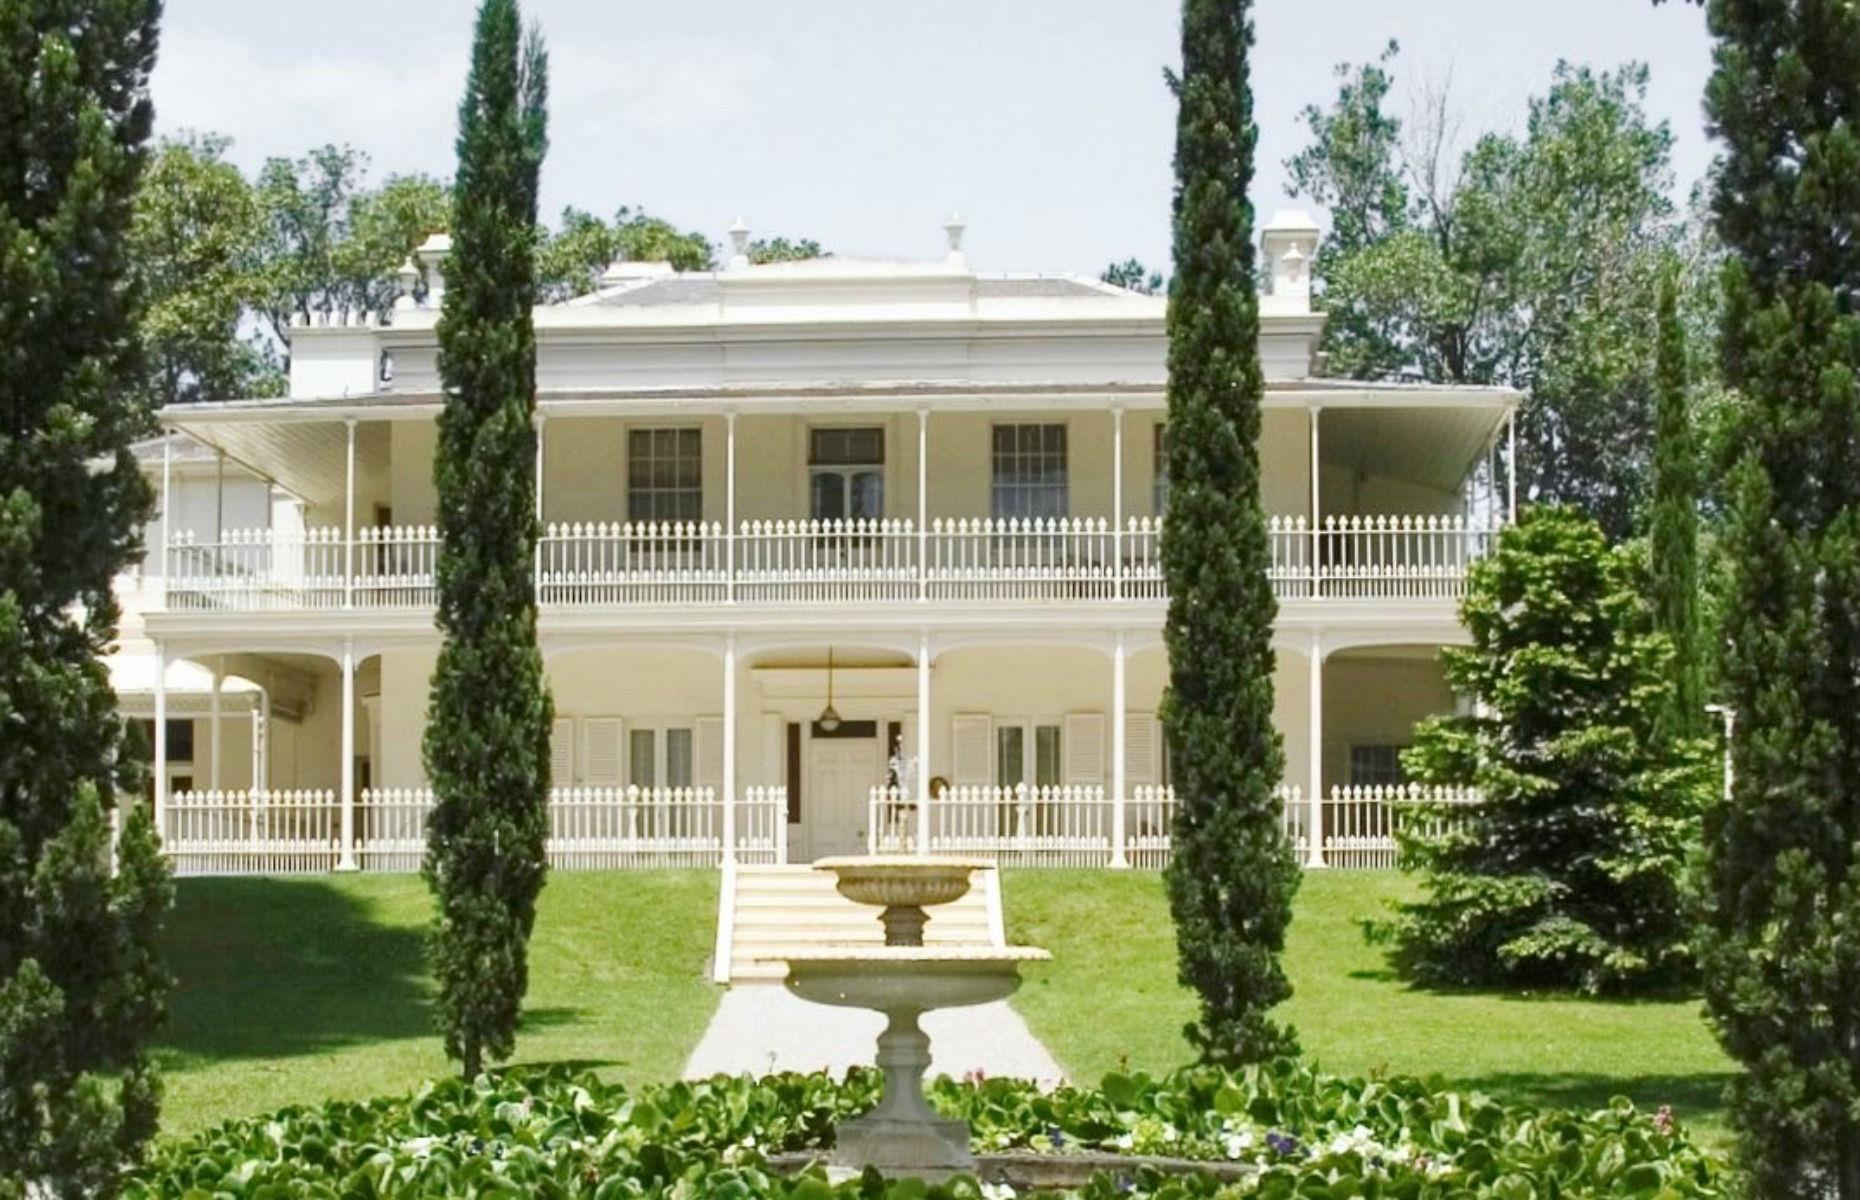 Slide 5 of 53: Elegant Como House, in Melbourne, is one of Australia's finest stately homes, built in 1847 and occupied by the Armytage family from 1864 to 1959. Now owned by Australia's National Trust, the building showcases a blend of Australian Regency and classic Italianate architecture.